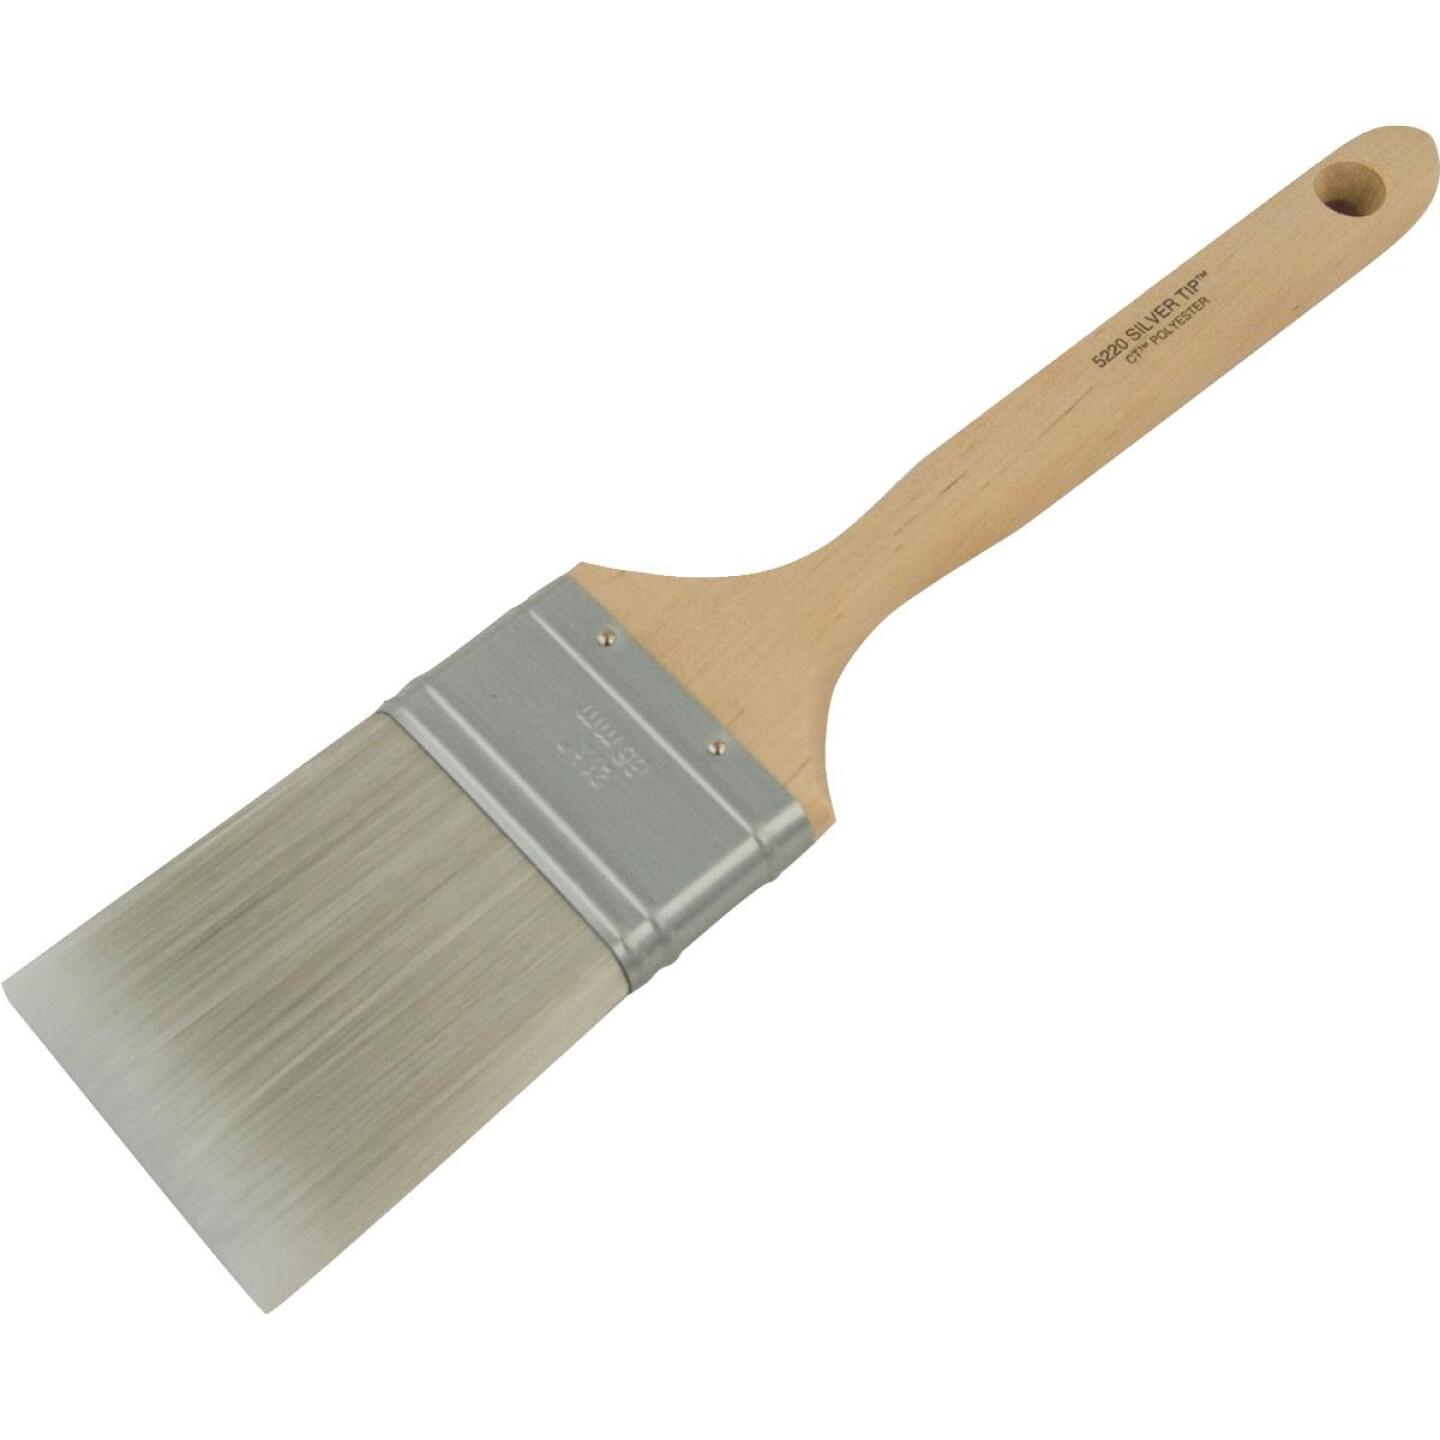 Wooster SILVER TIP 2-1/2 In. Chisel Trim Flat Sash Paint Brush Image 1